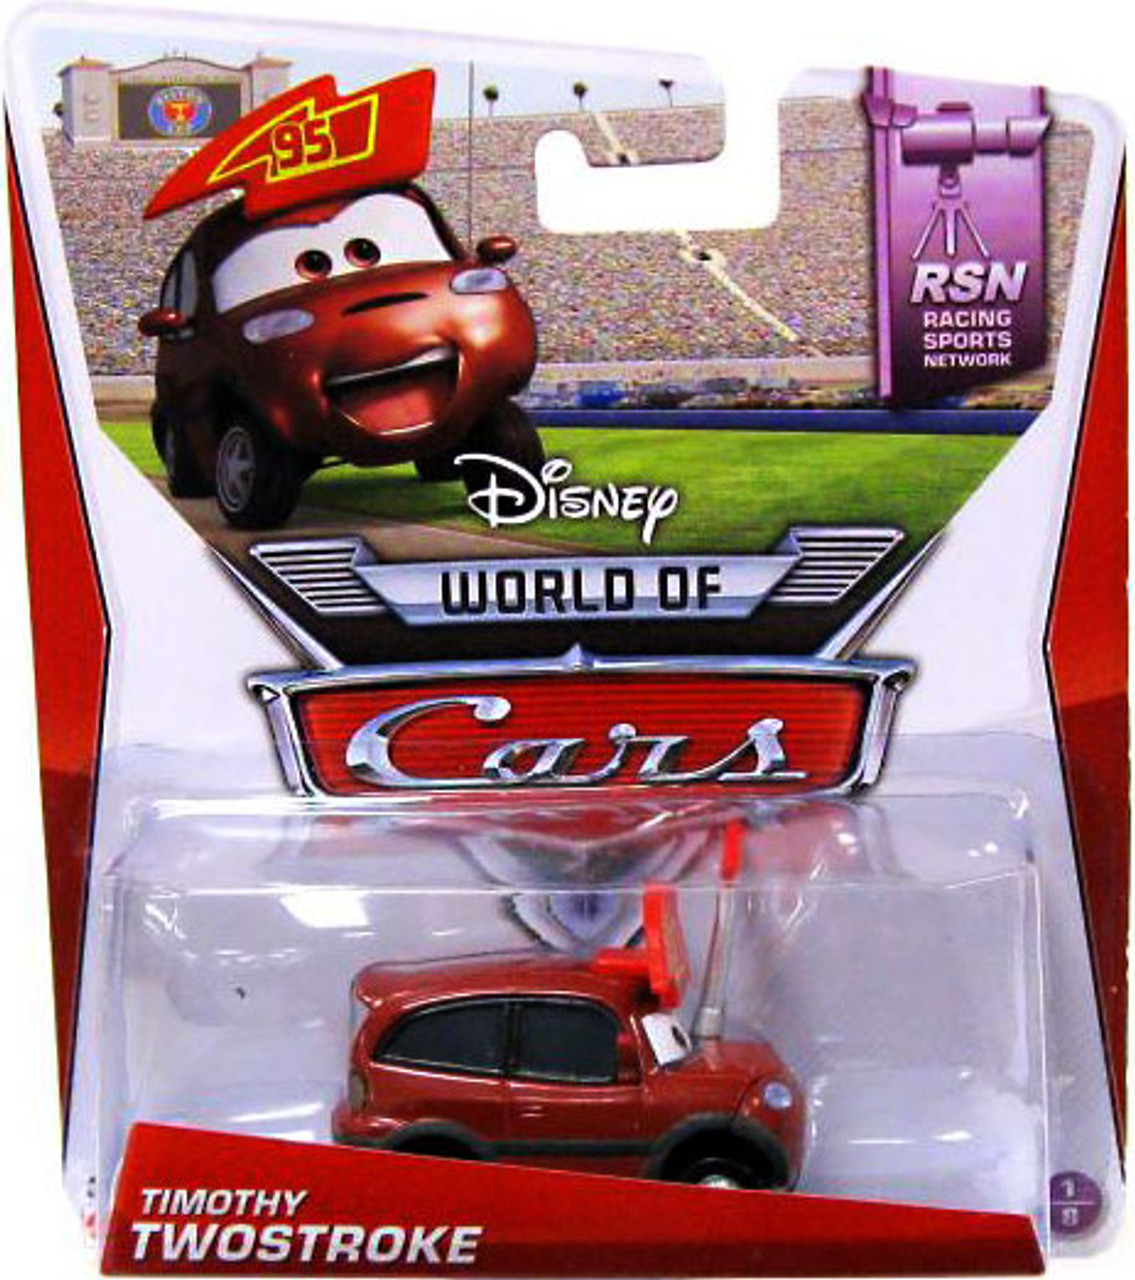 Disney Cars The World of Cars Series 2 Timothy Twostroke Diecast Car #1 of 8